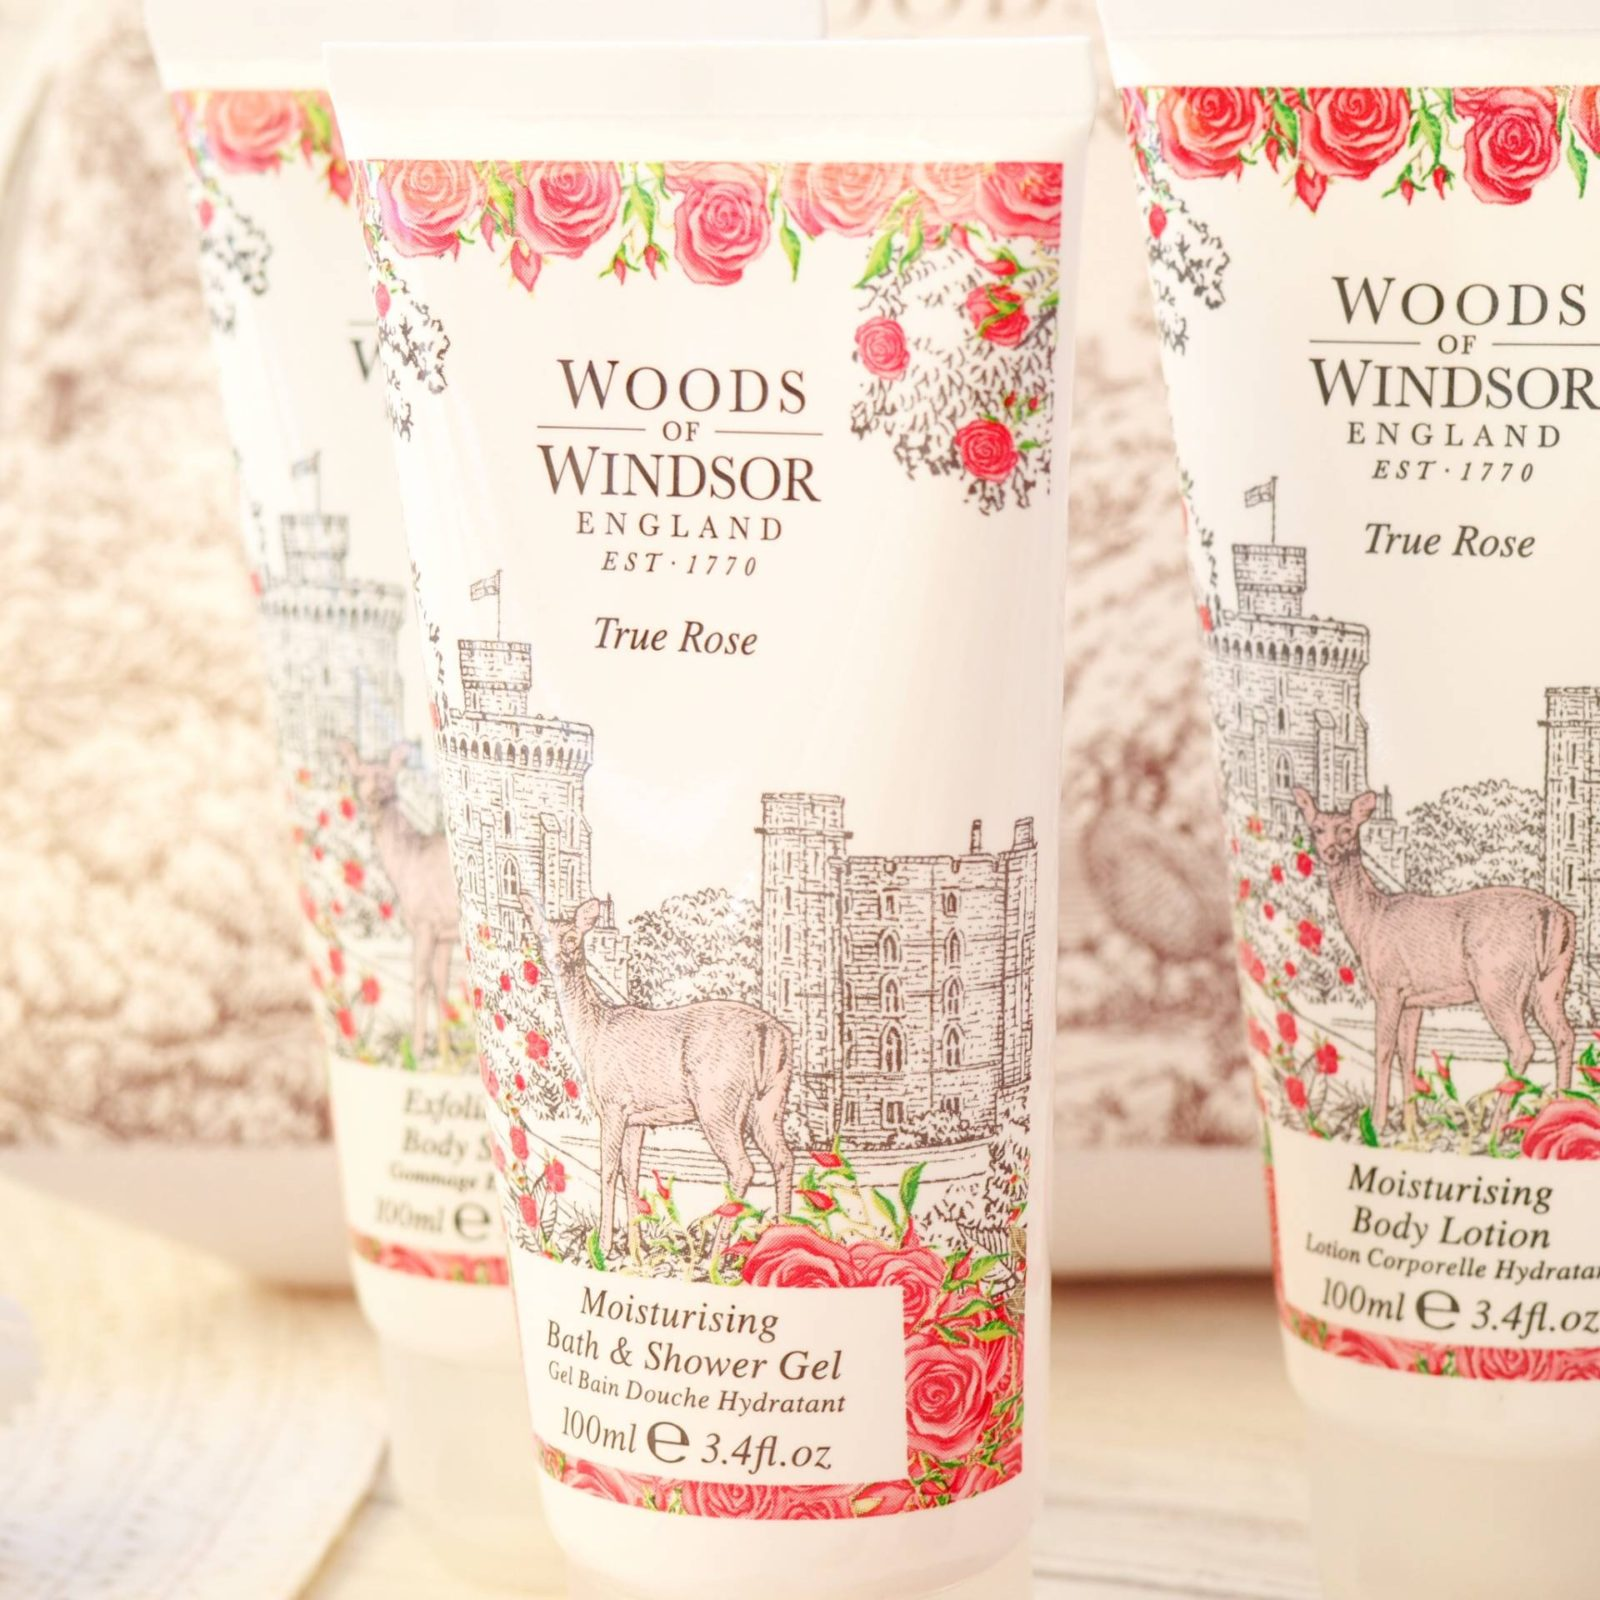 Woods of Windsor Review